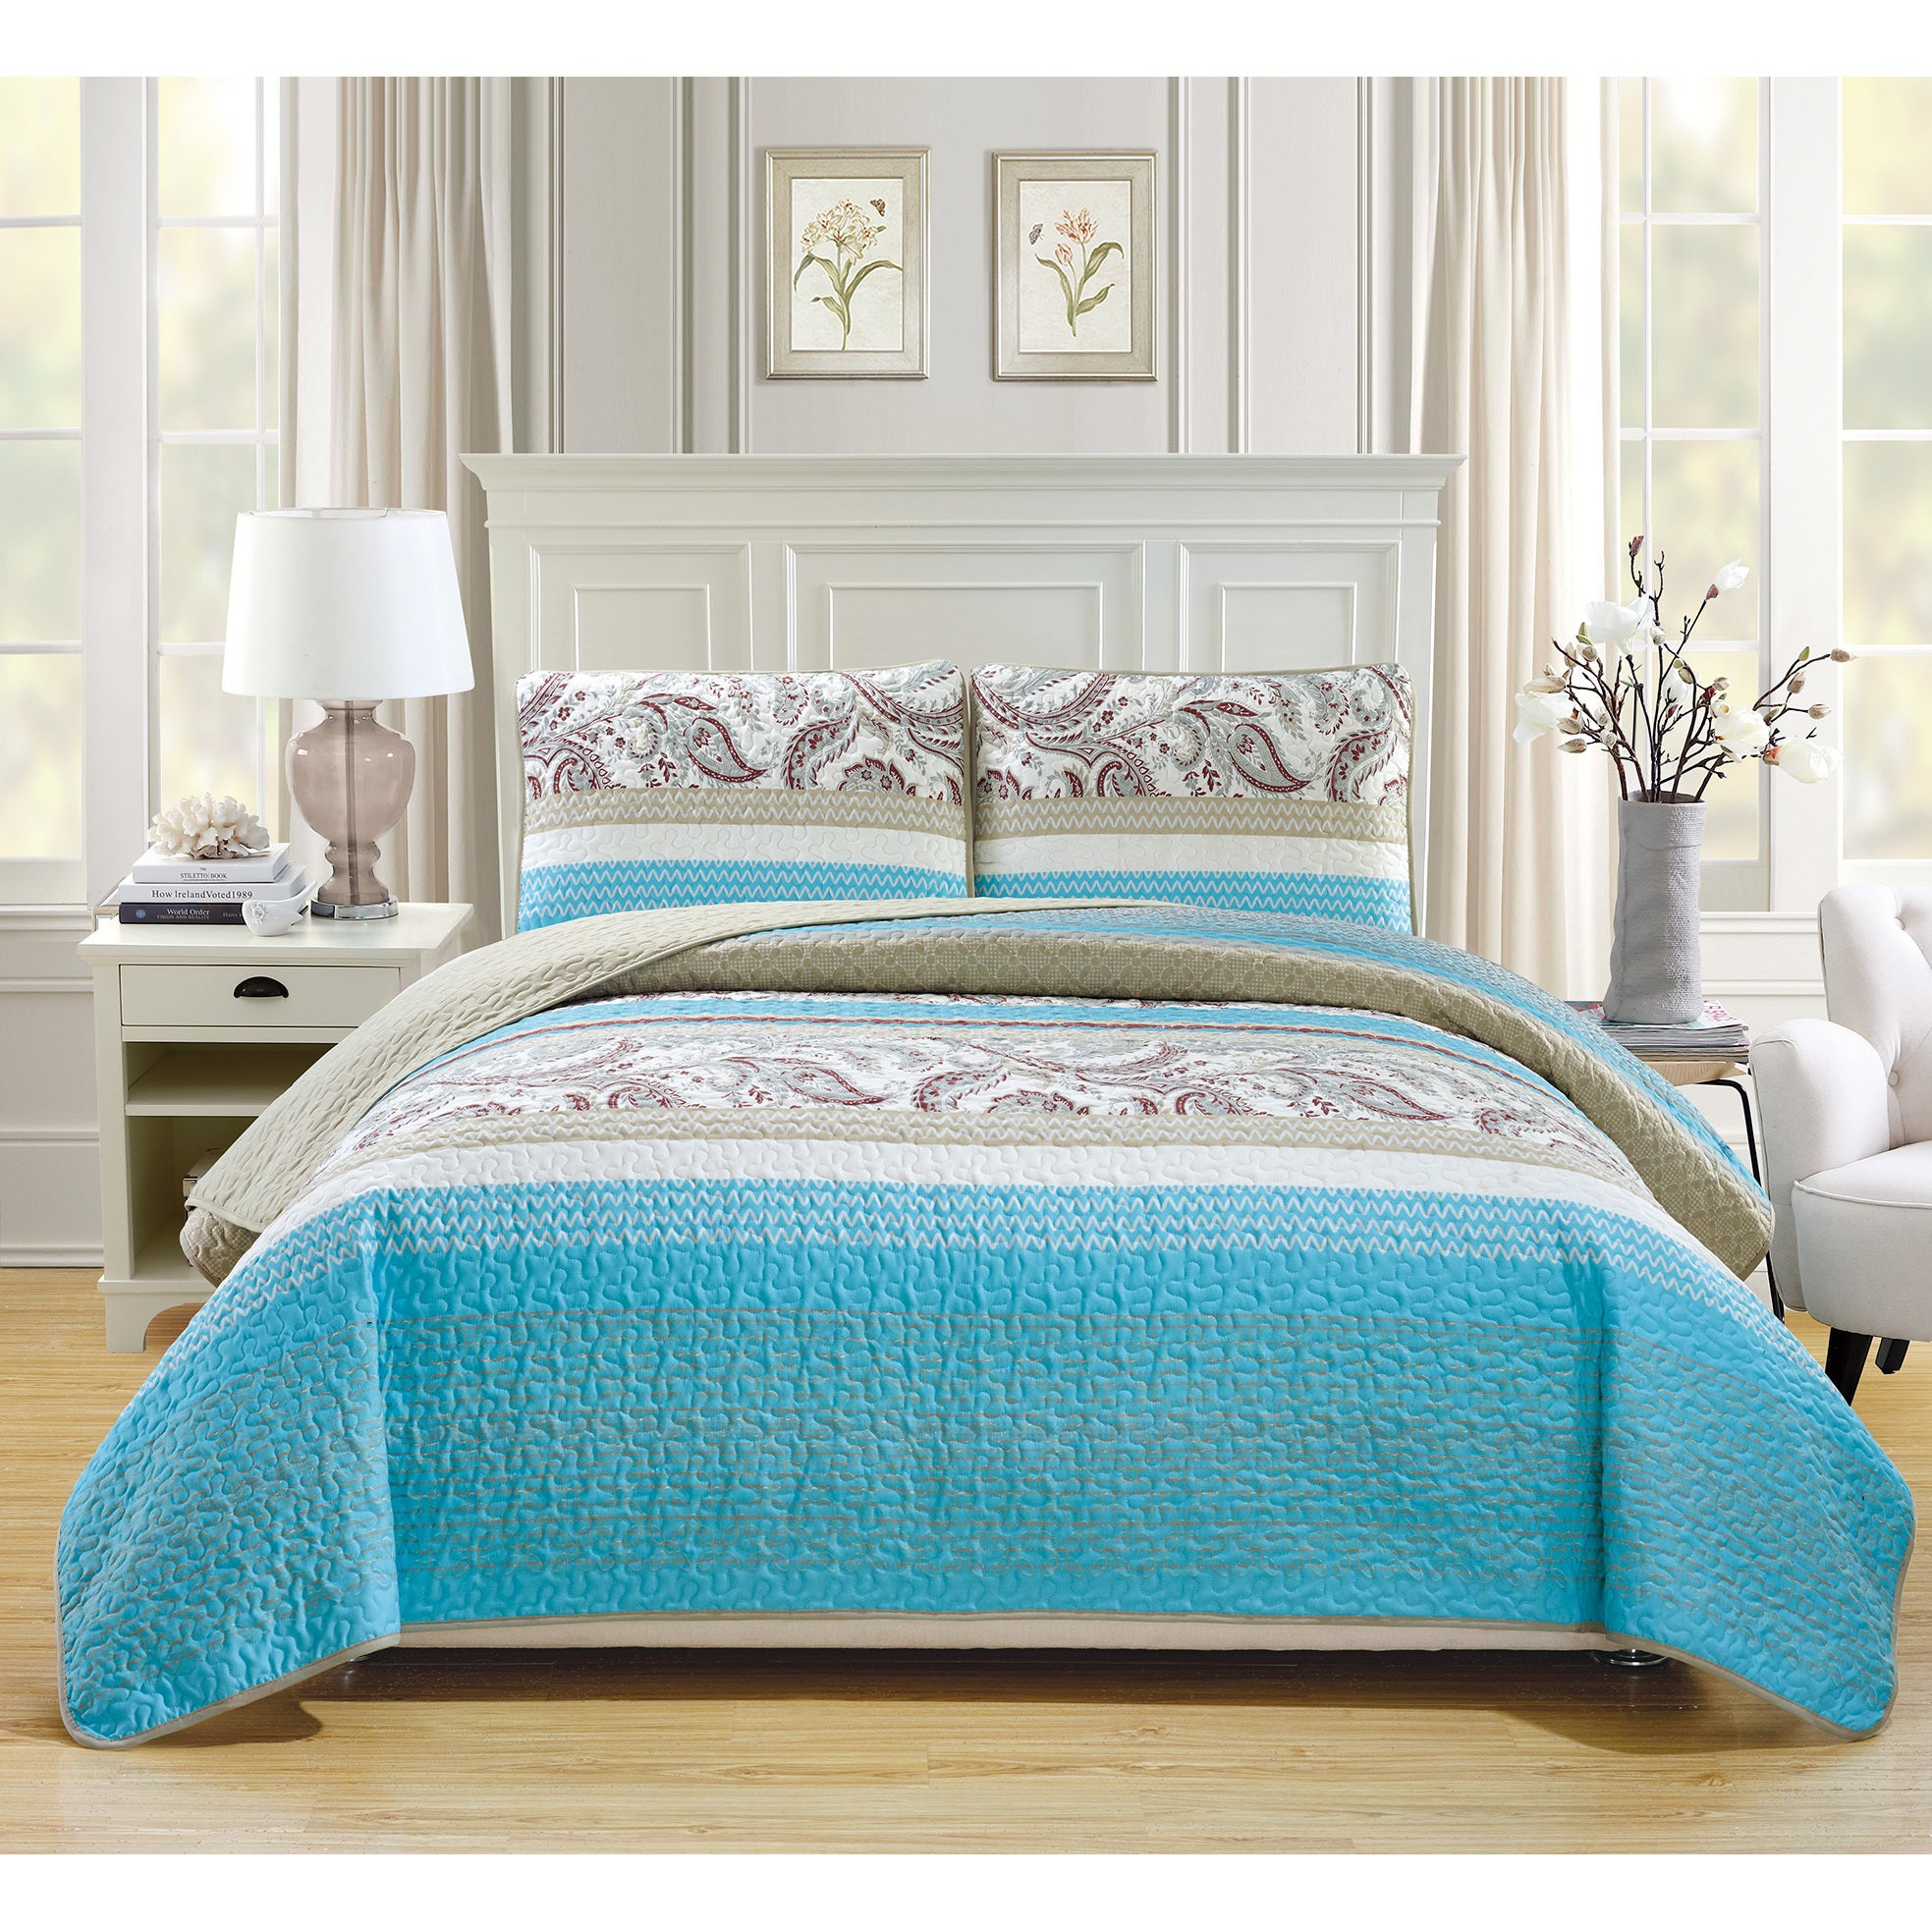 Shop Fashion Street Sisley Quilted 3-piece Bedspread Set - Free ...